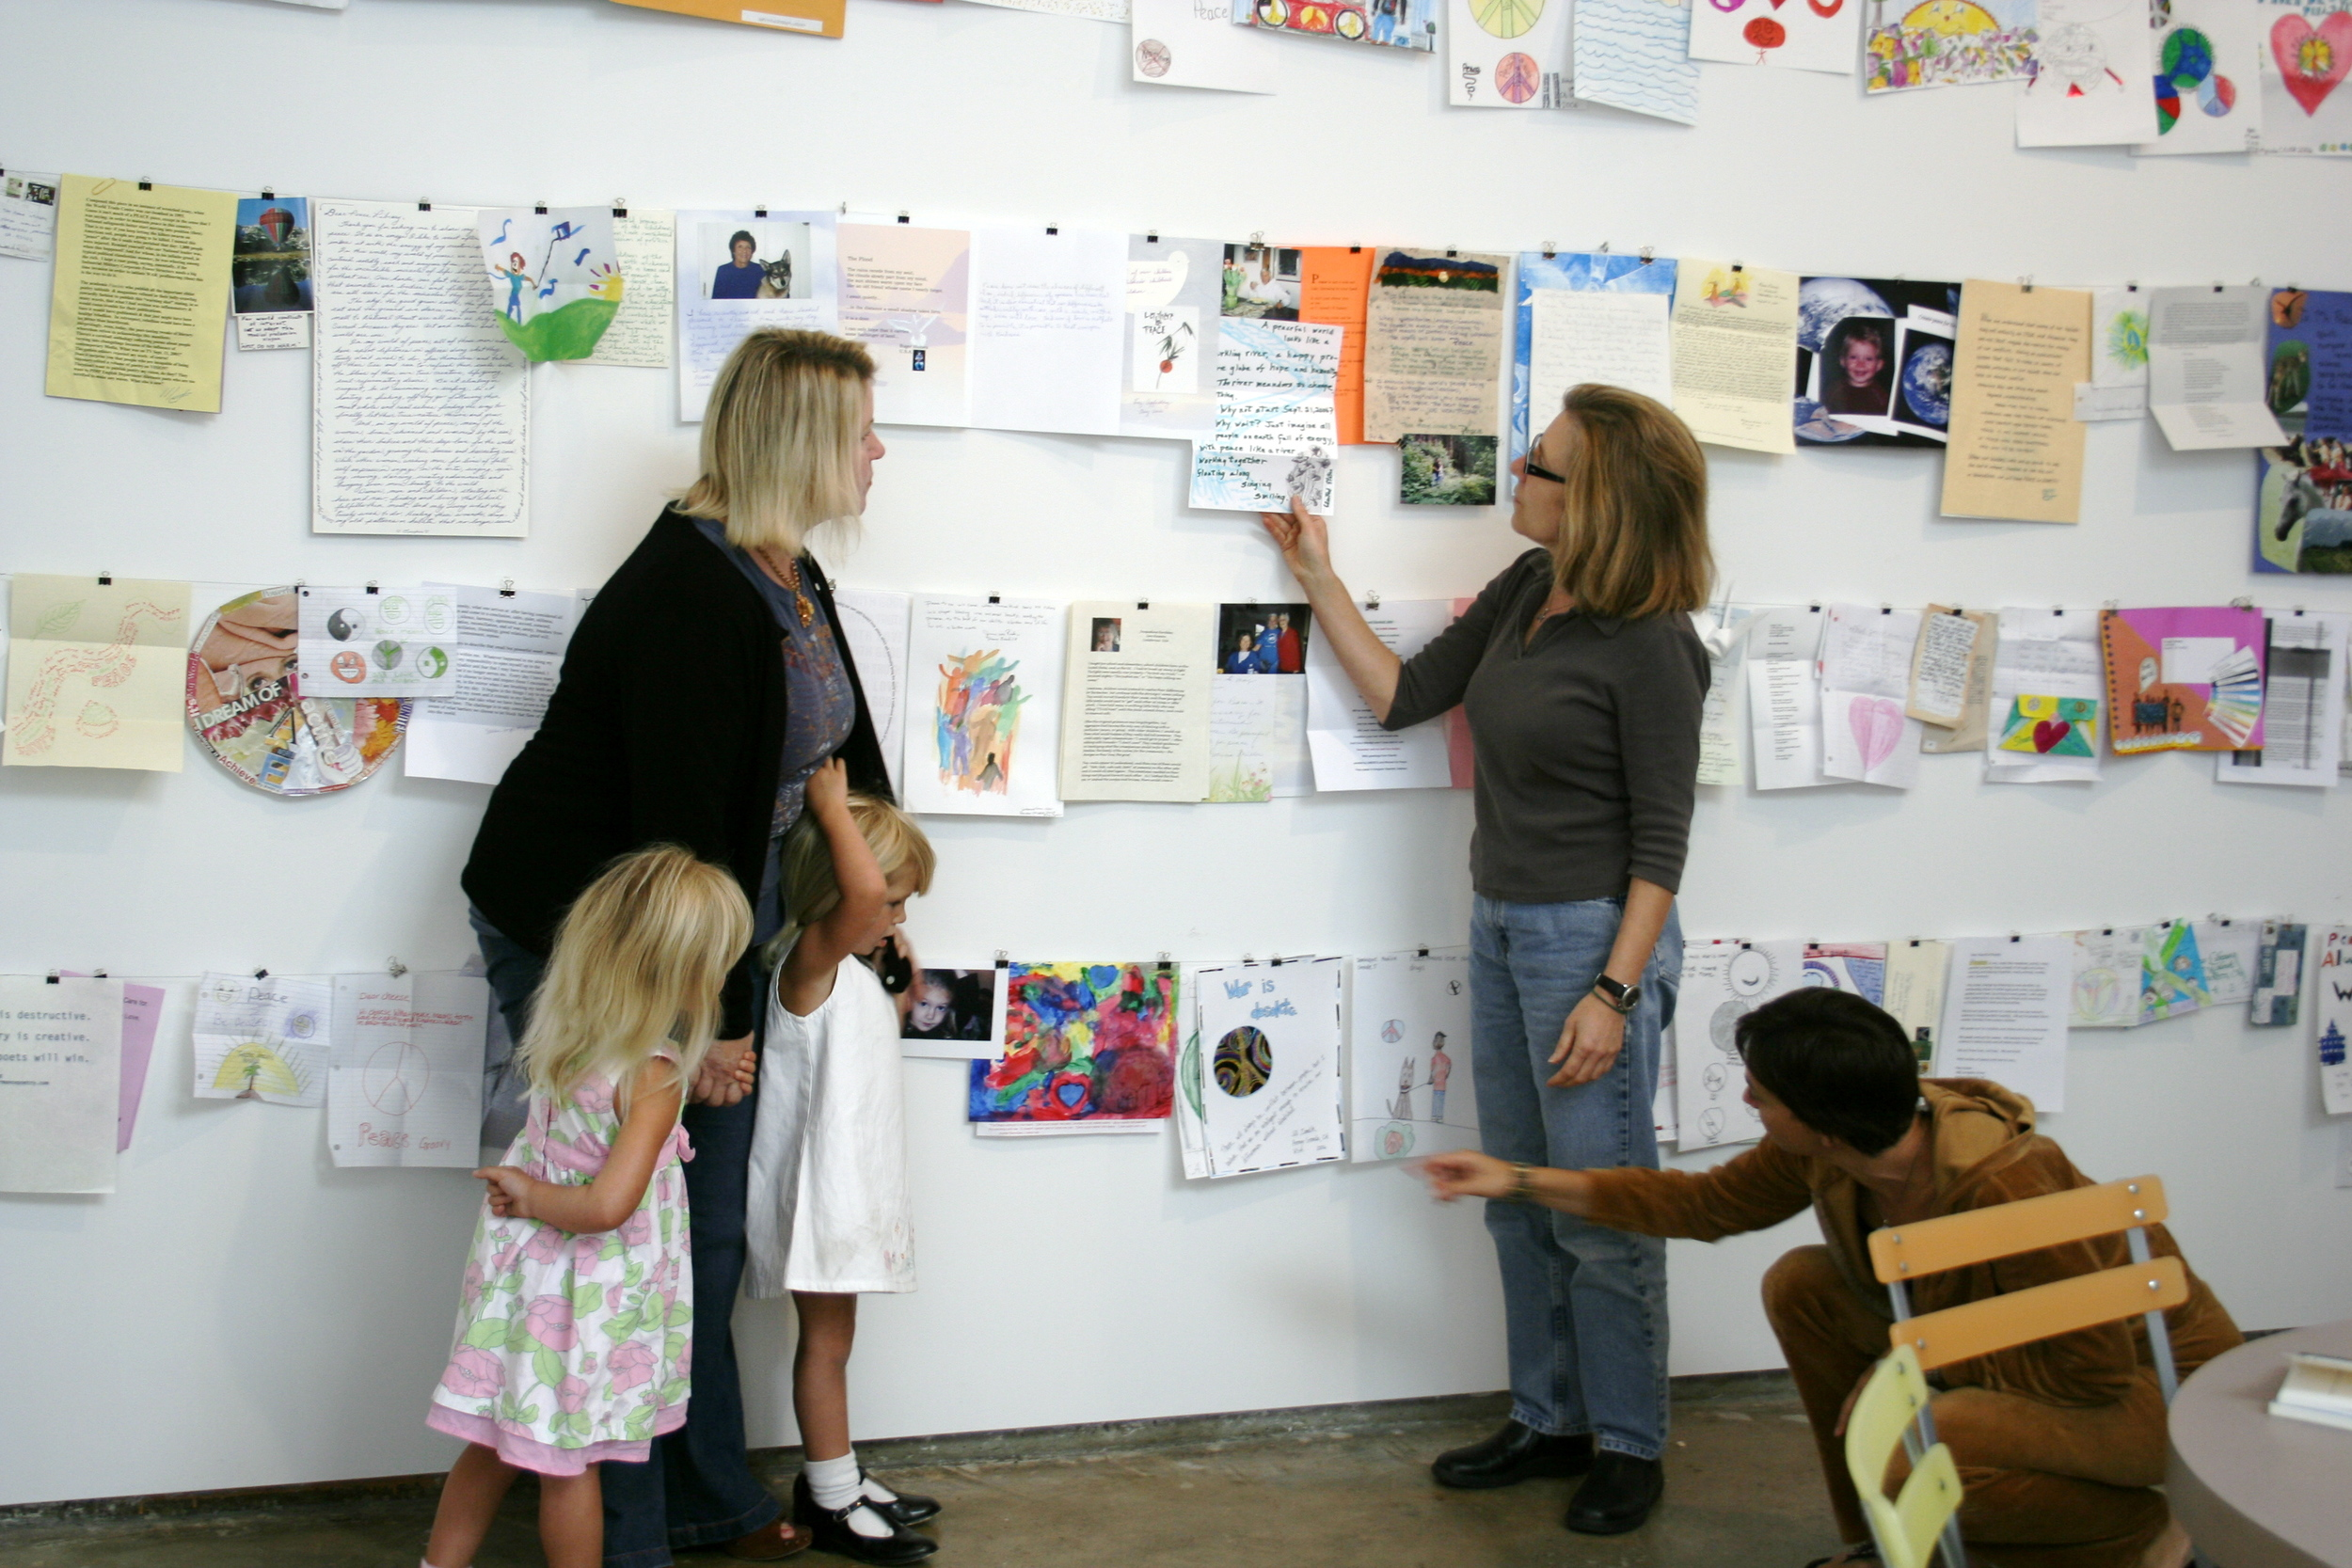 Letters for Peace | gallery installation ARTS  Space  Obispo